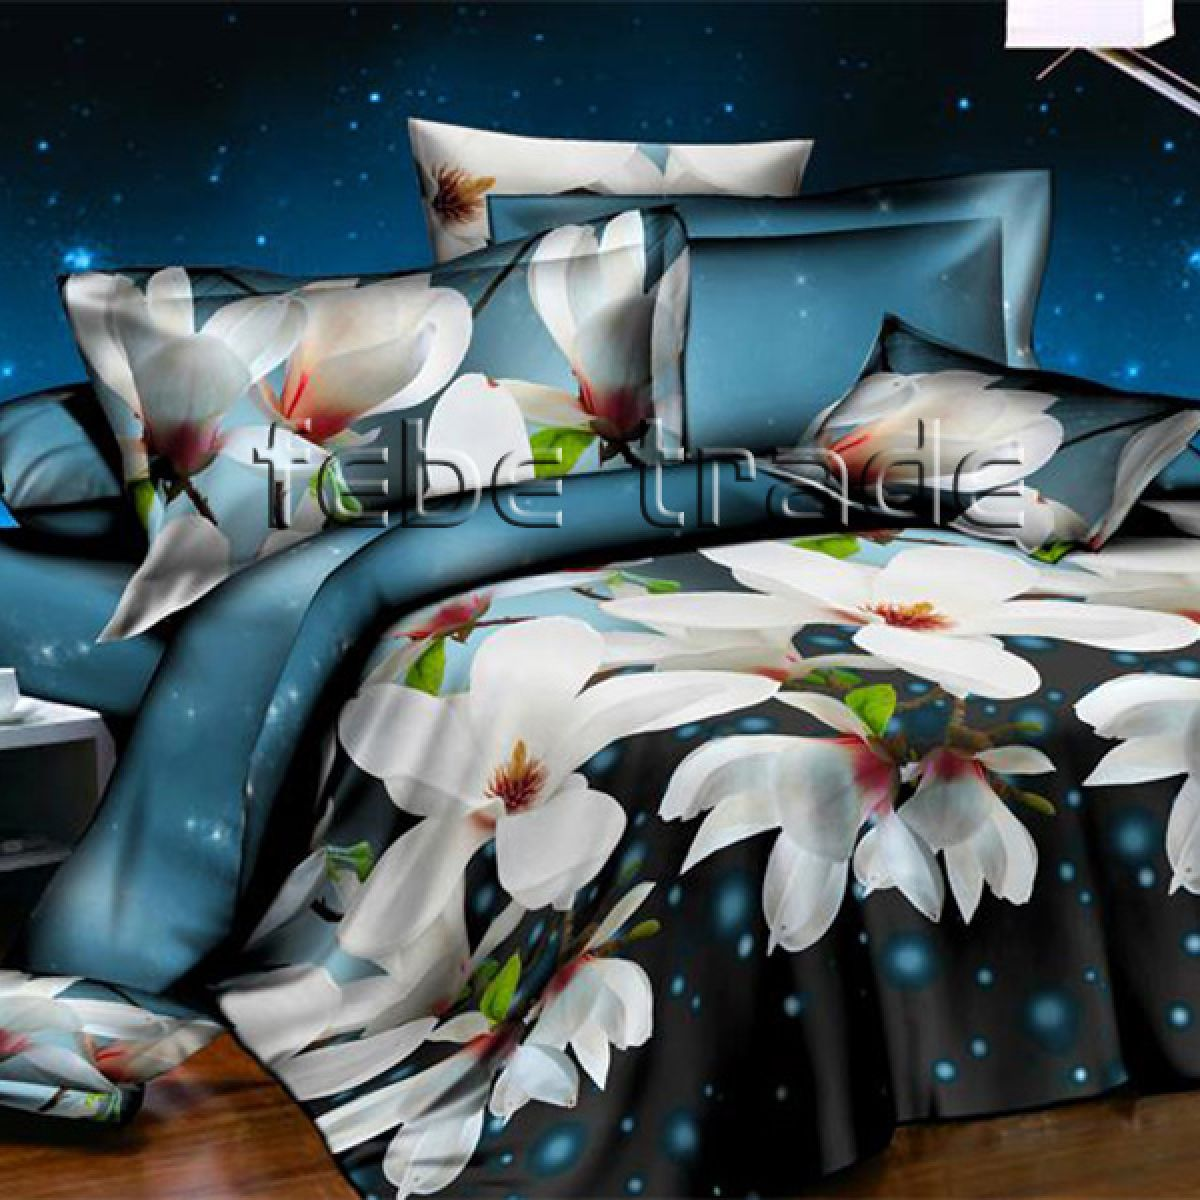 3D Beddings Plush - Cotton World - FSB-804 - 220x200 cm - 4 pcs